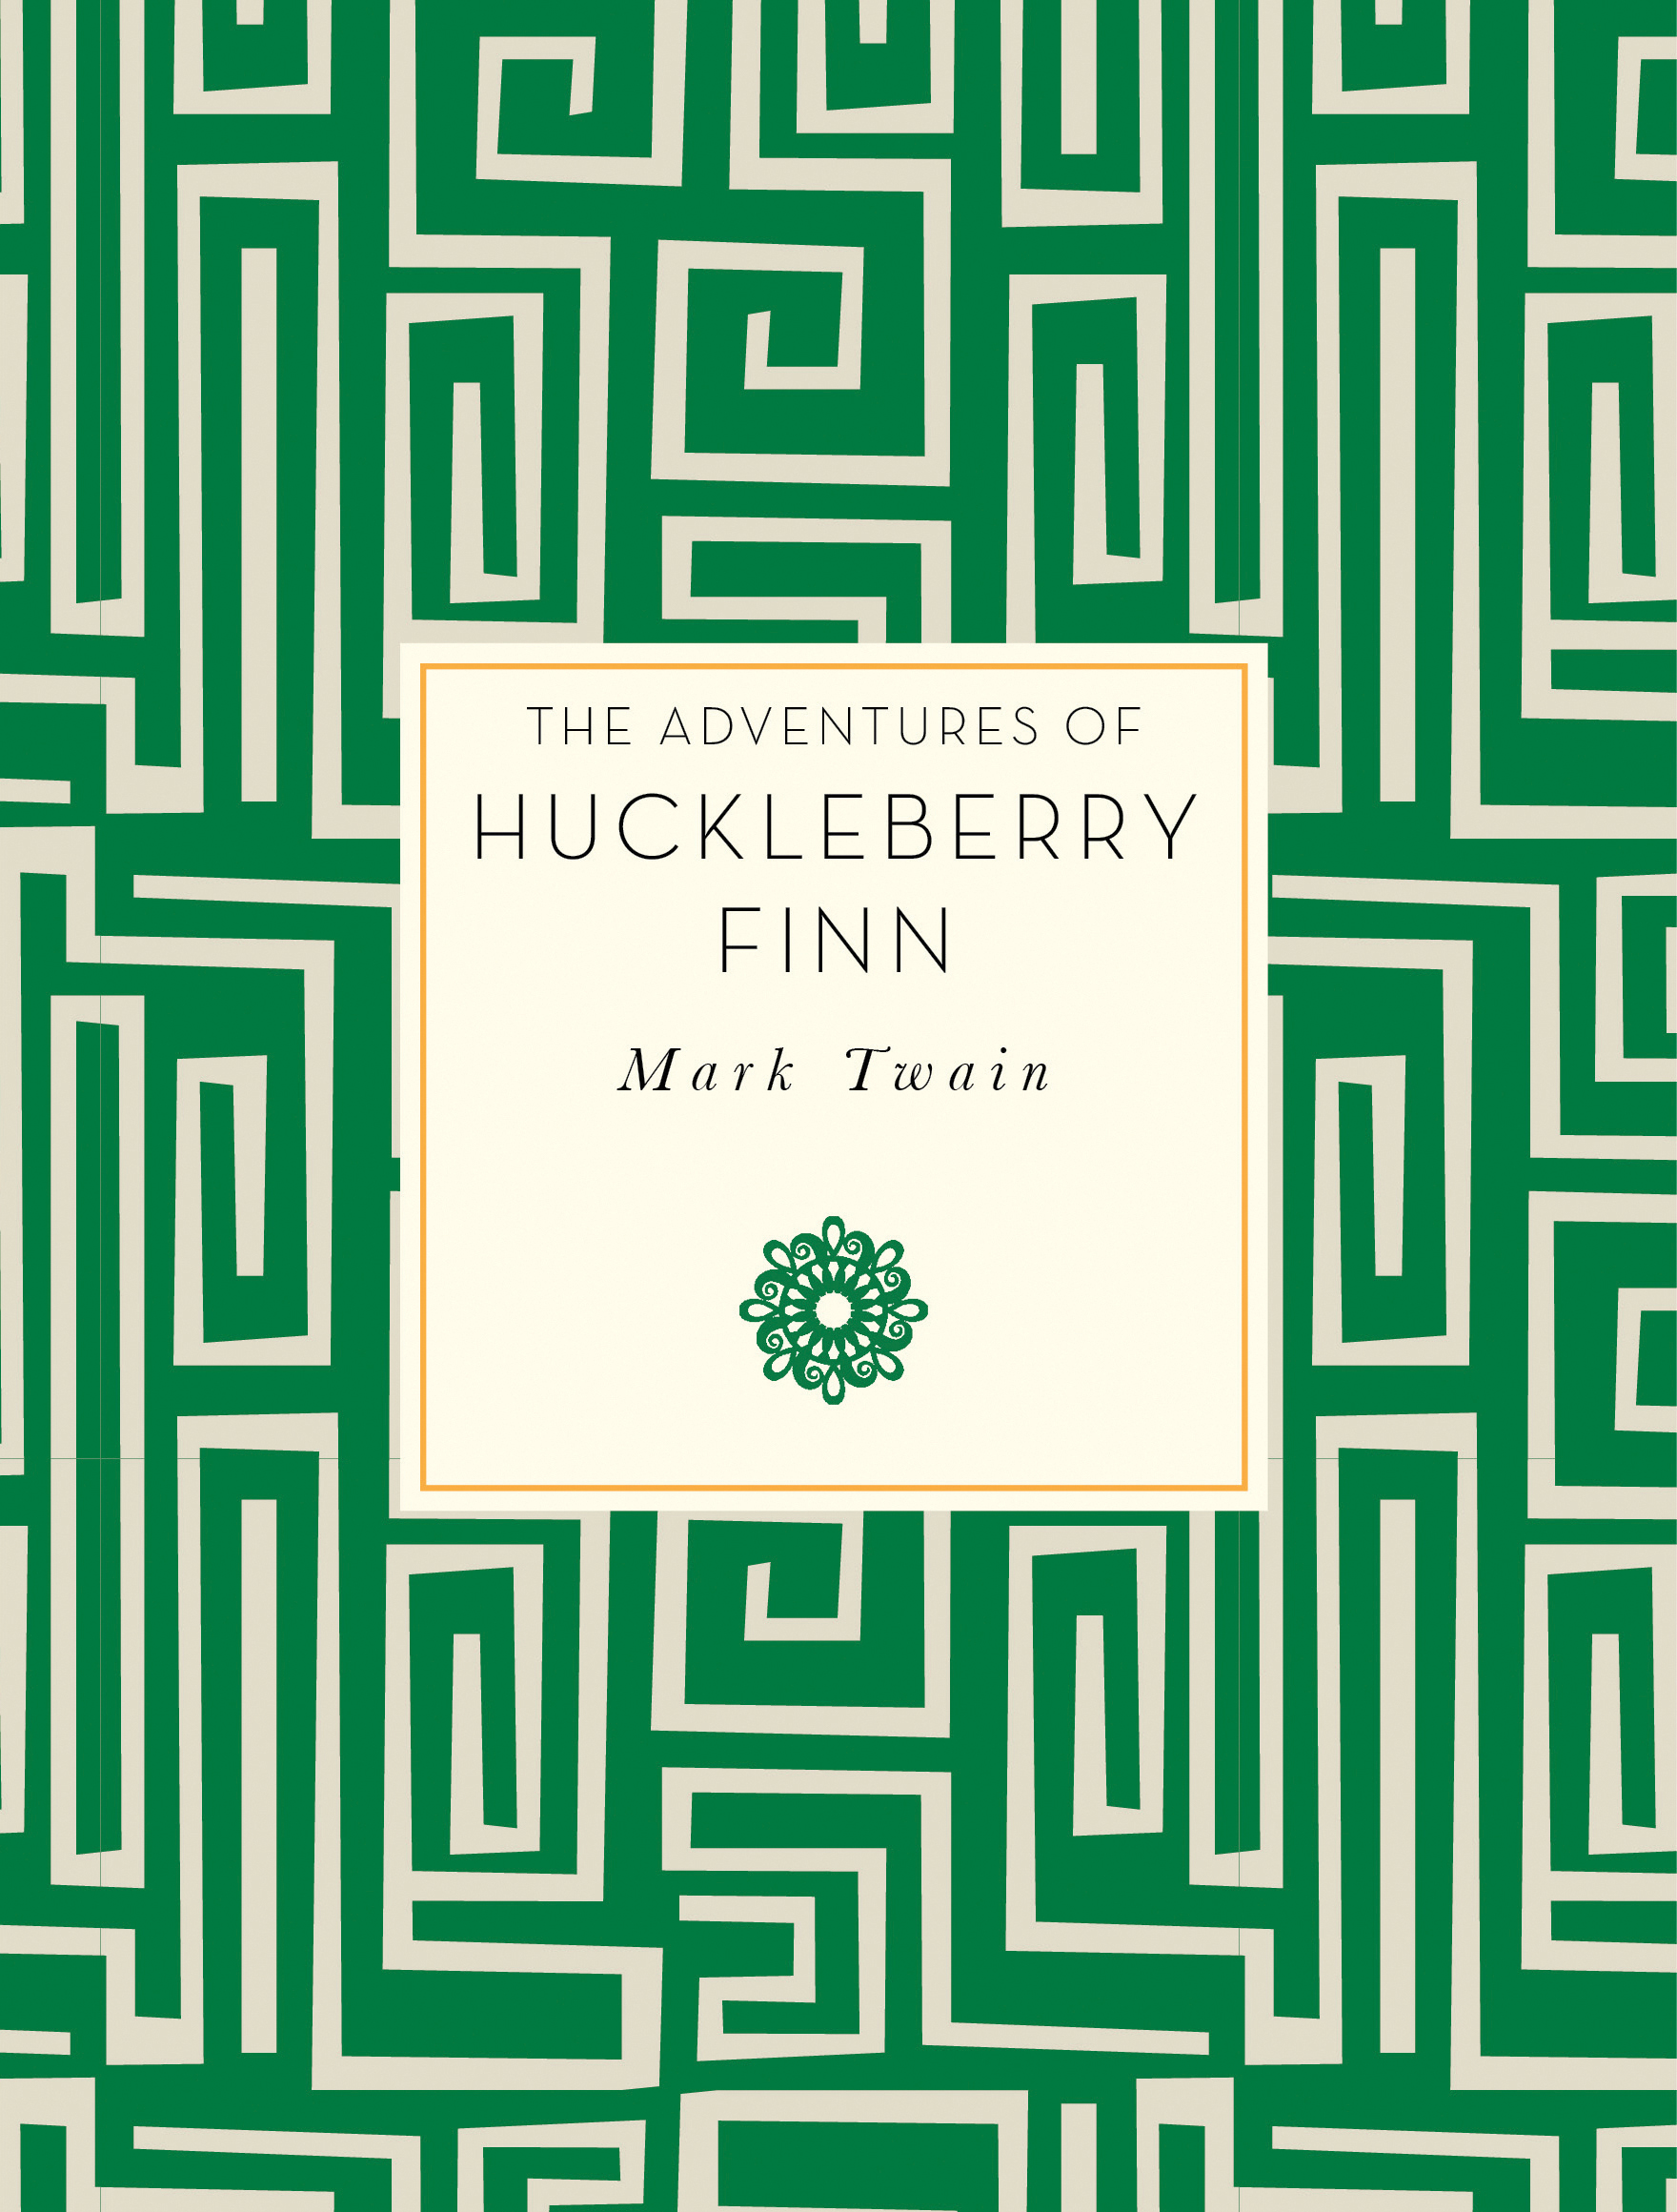 an overview of the point of view in the novel the adventures of huckleberry finn by mark twain